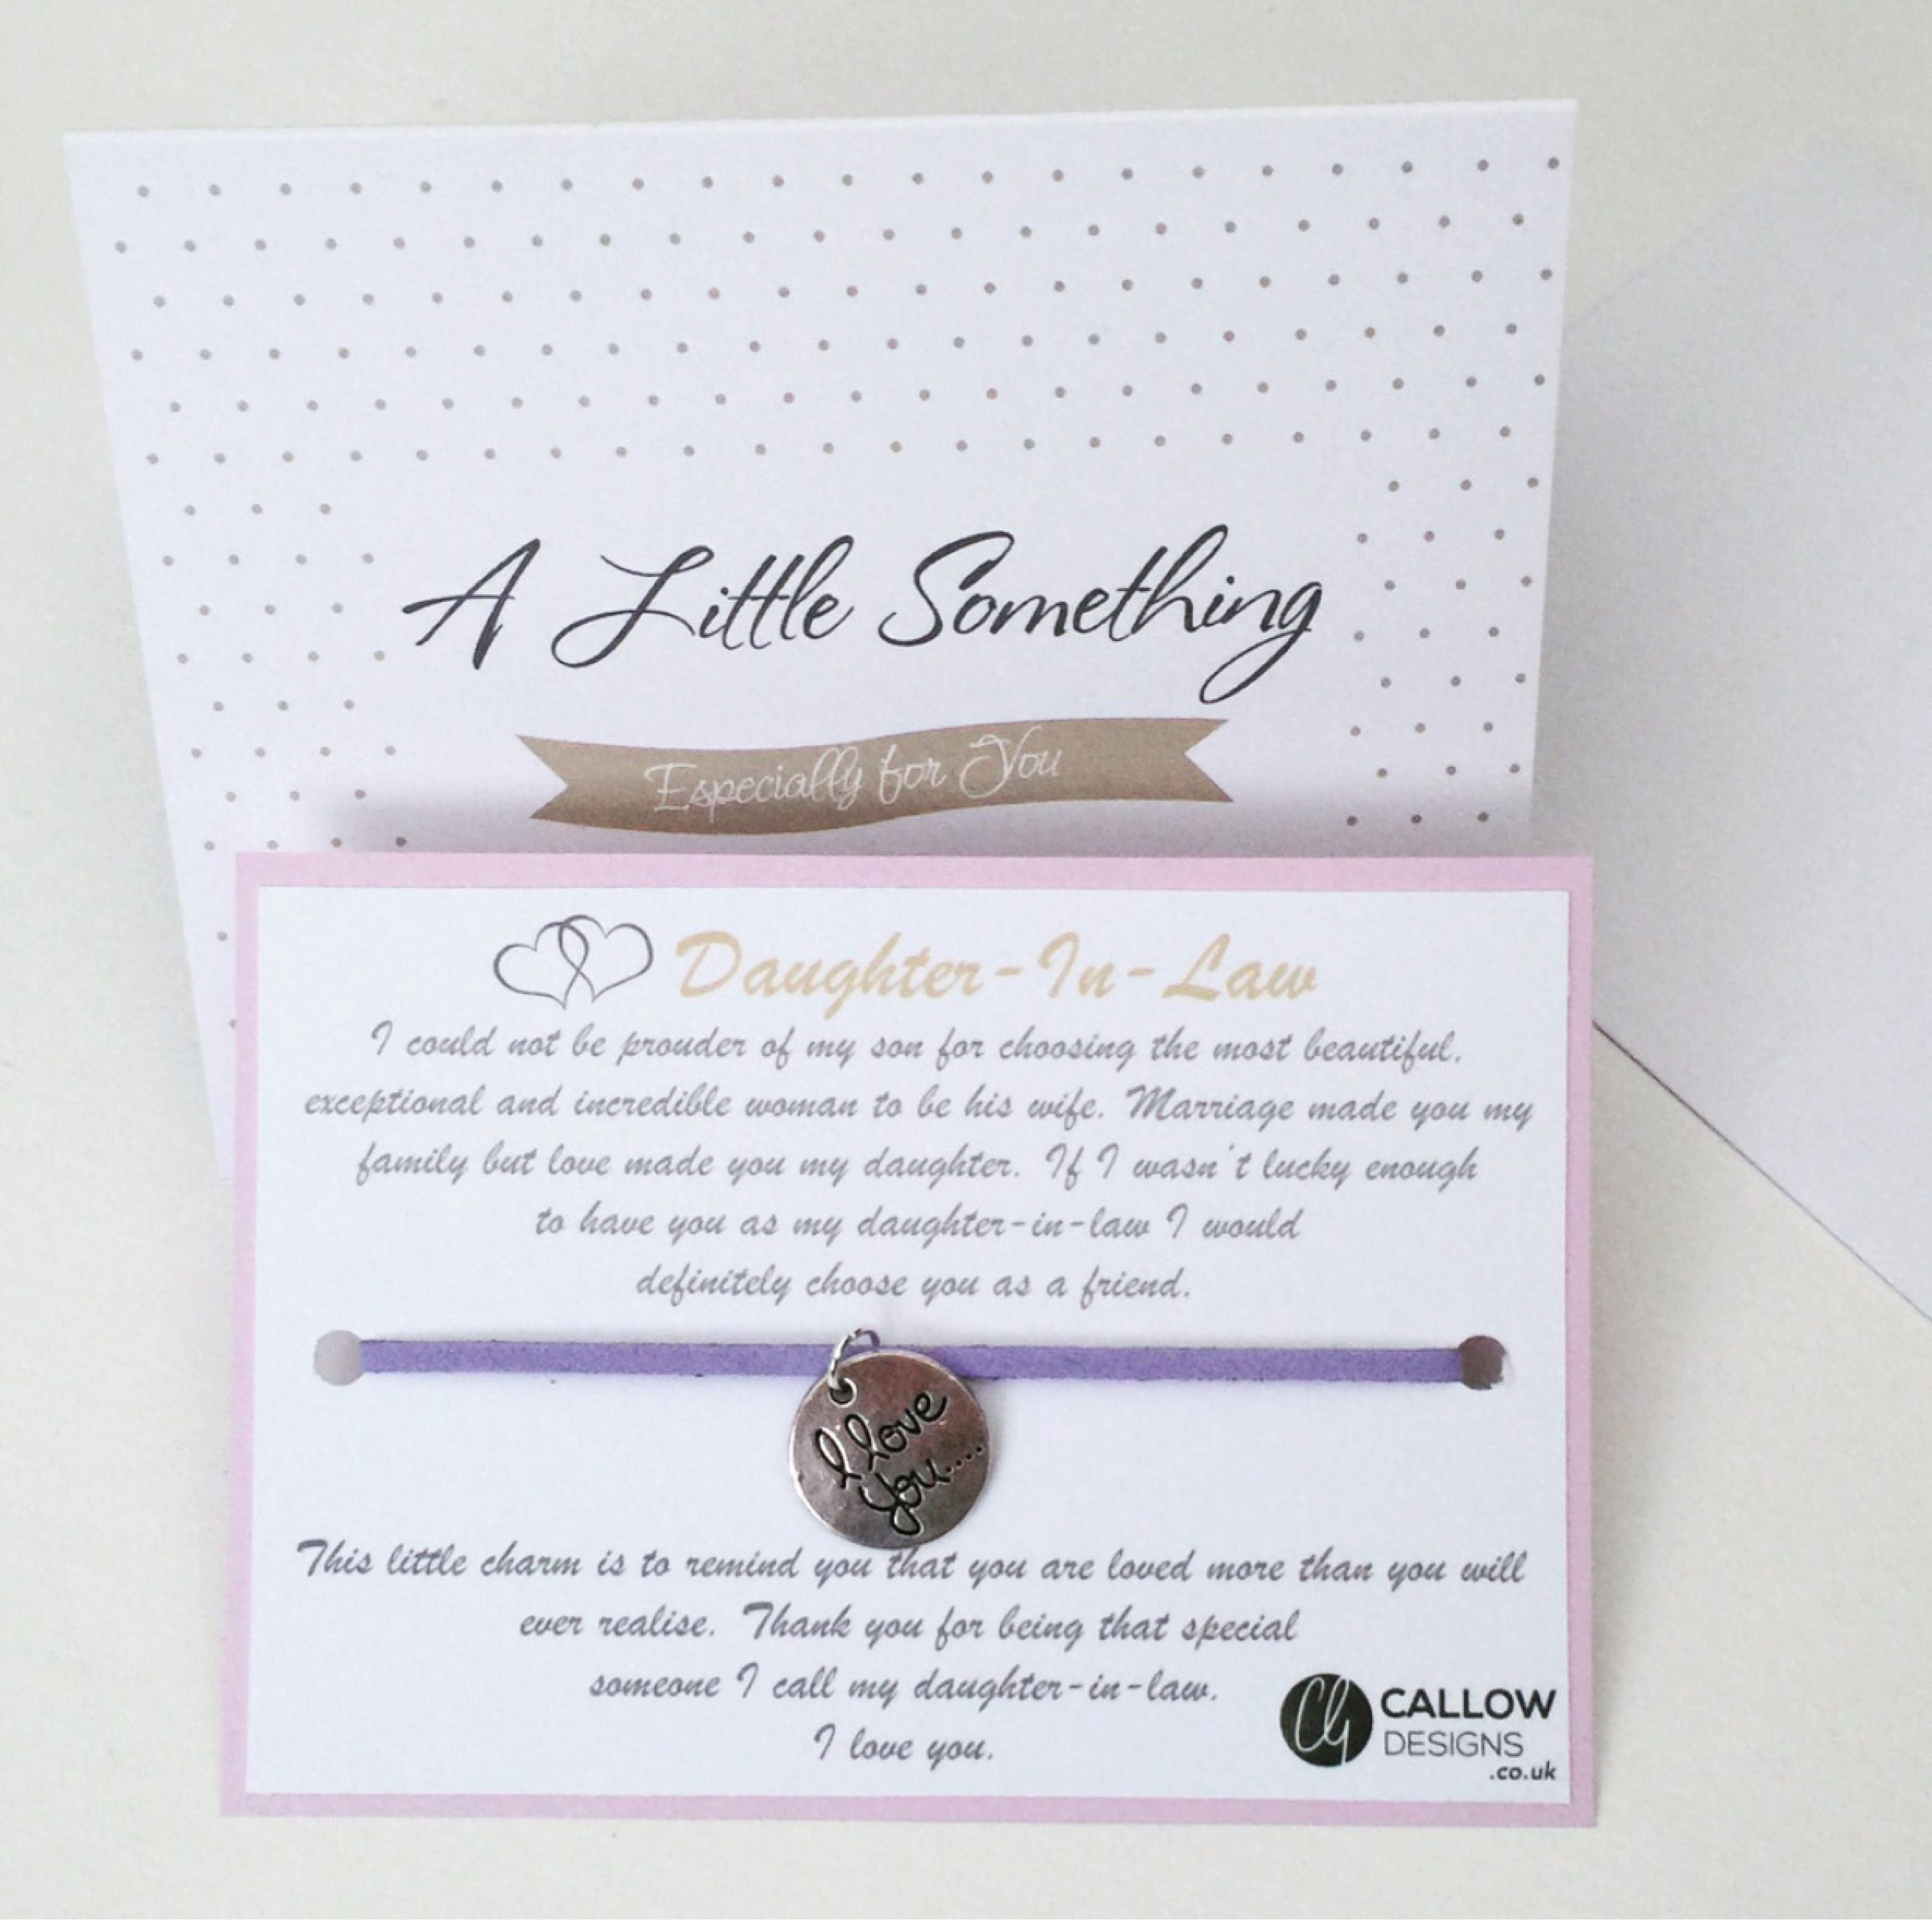 Daughter in law i love you greetings card charm wish bracelet daughter in law i love you greetings card charm wish bracelet meaning quote colour silver family callow designs sisters bond small gift stopboris Choice Image